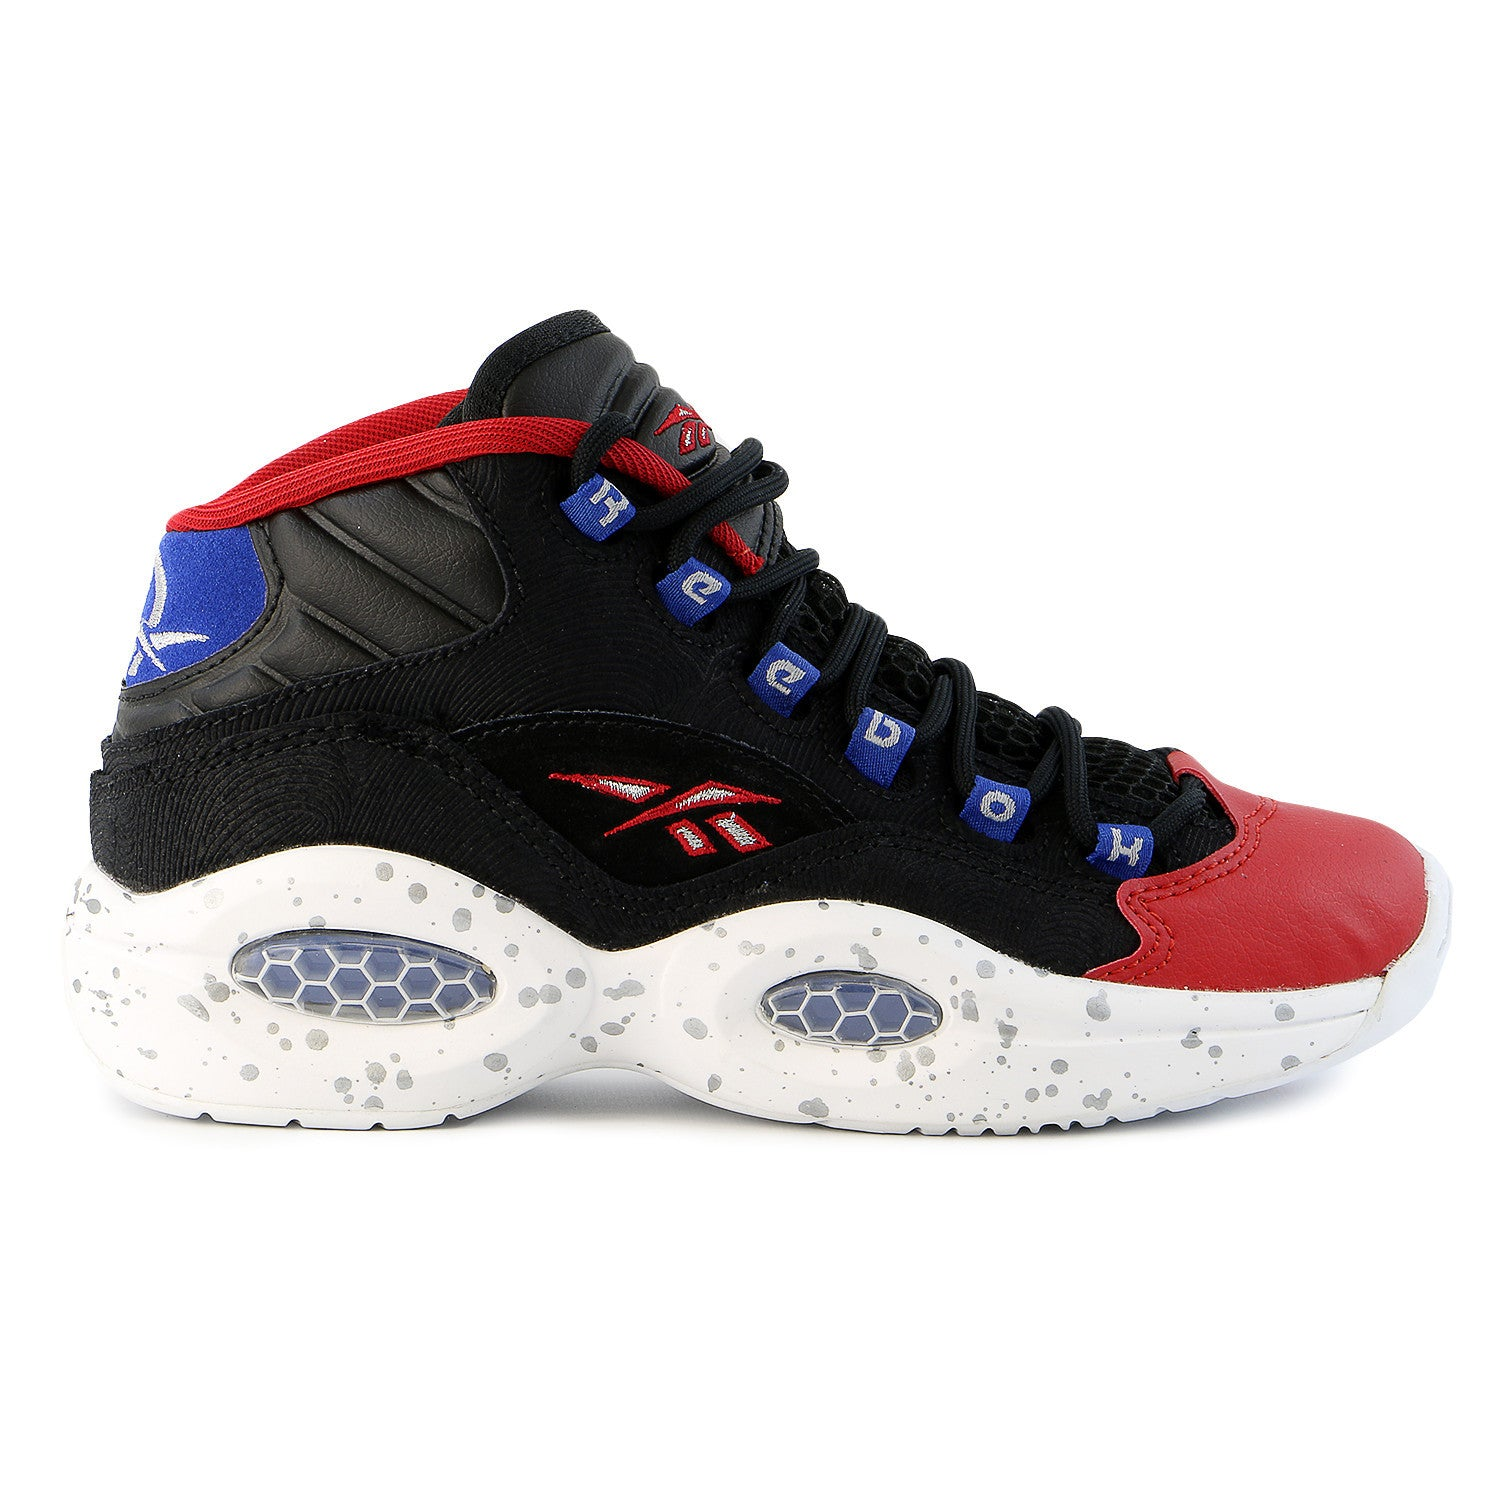 Reebok Question Running Shoes - Black White Excellent Red - Boys ... 1d24cba132f0